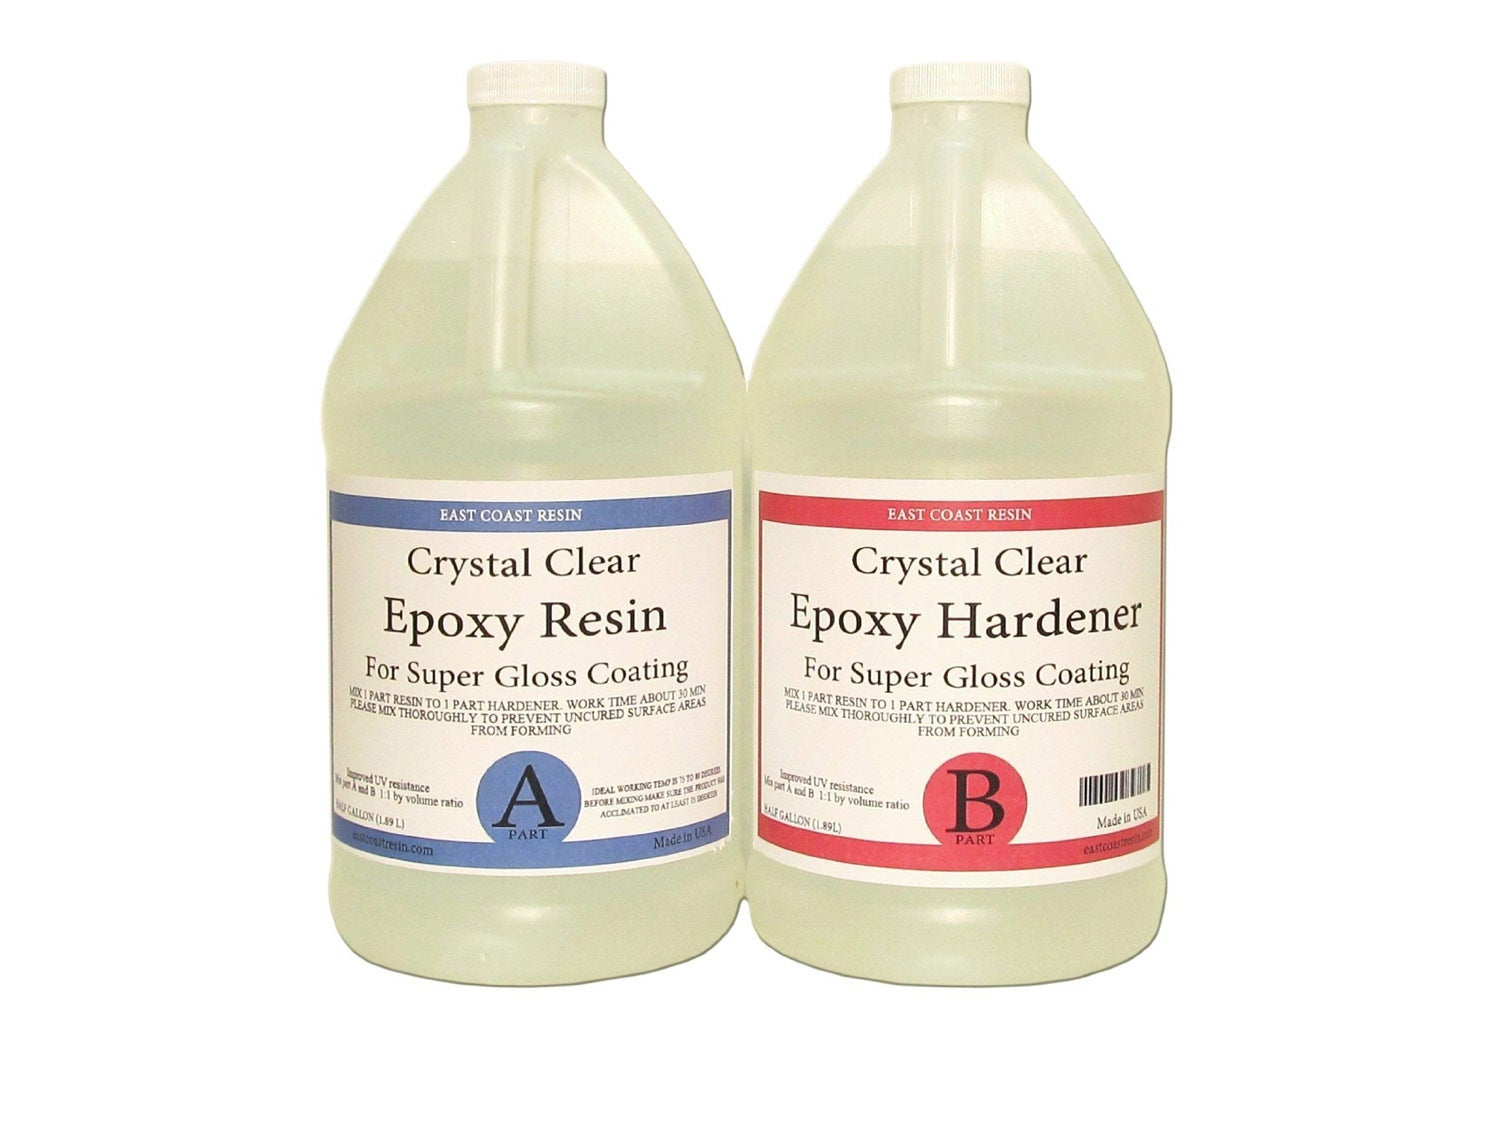 EPOXY Resin Crystal Clear 1 Gallon Kit